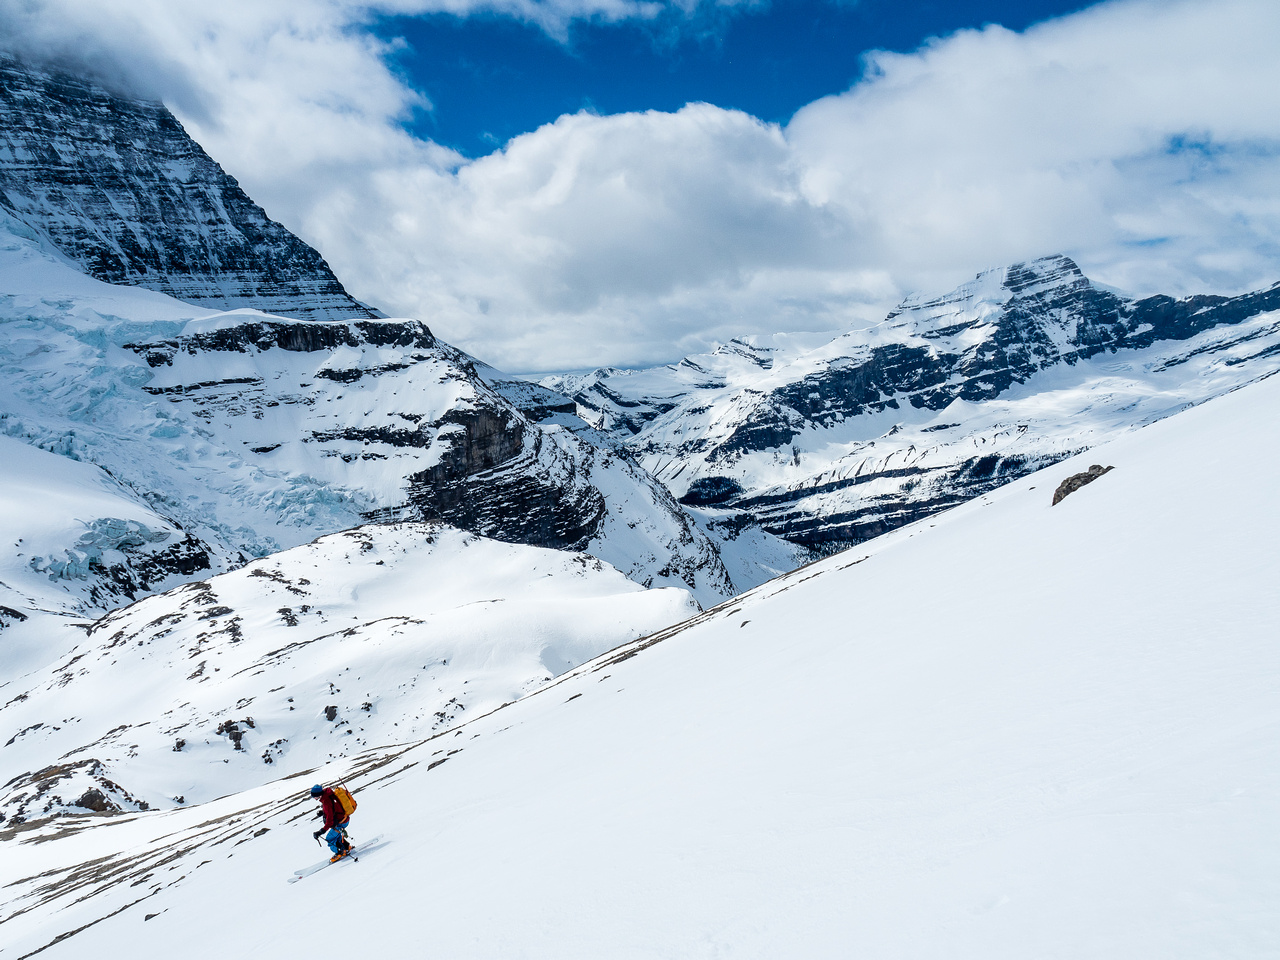 Ben skis down Rearguard's SW face with Whitehorn Mountain in the far distance and the upper Berg Glacier at left.